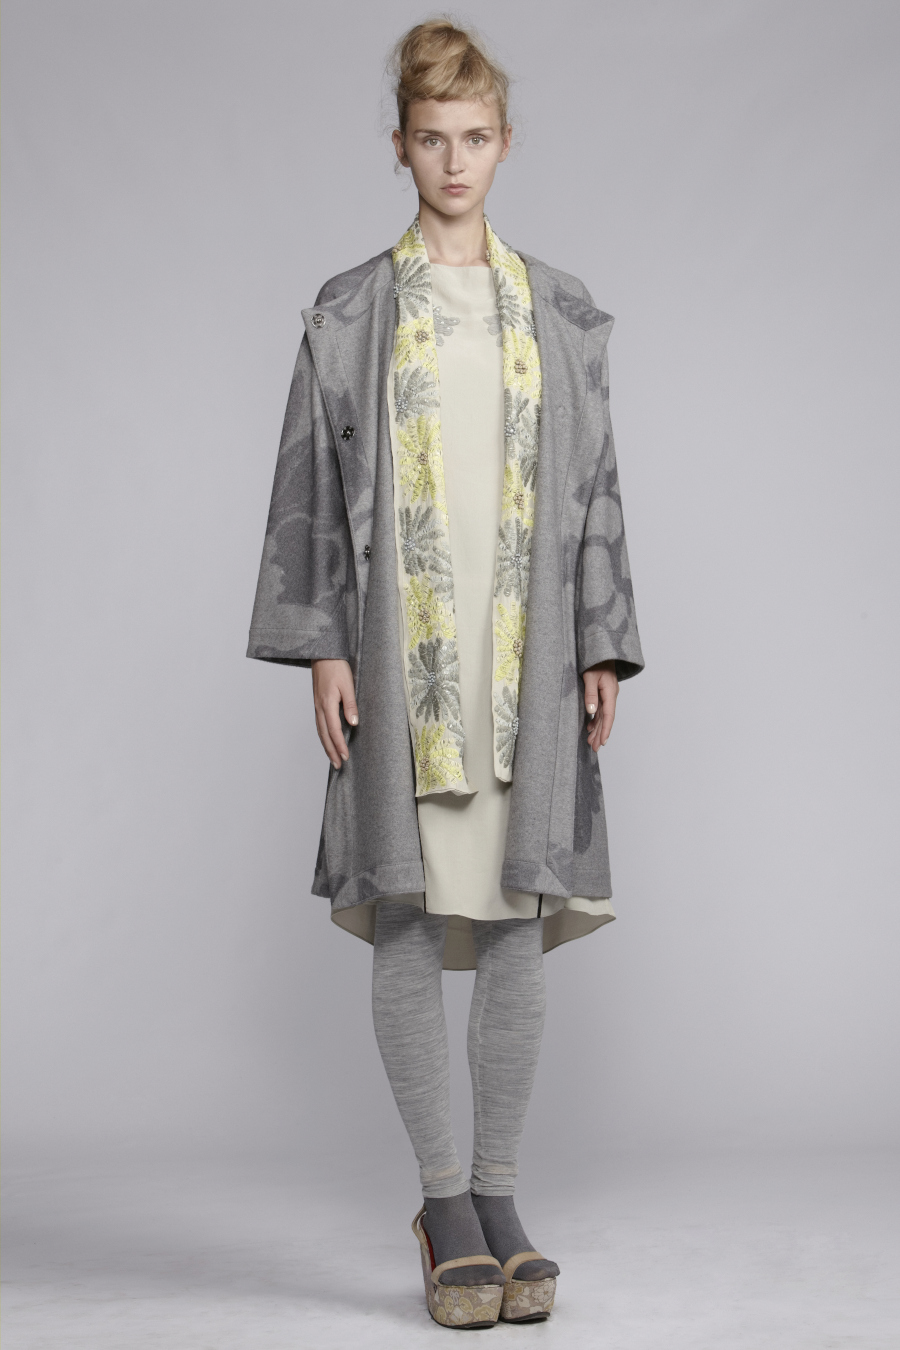 210/A131527 Boat Neck Panel Dress     600/A136132 Leggings     855/A139097 Coat     900/A137485 Embellished Scarf